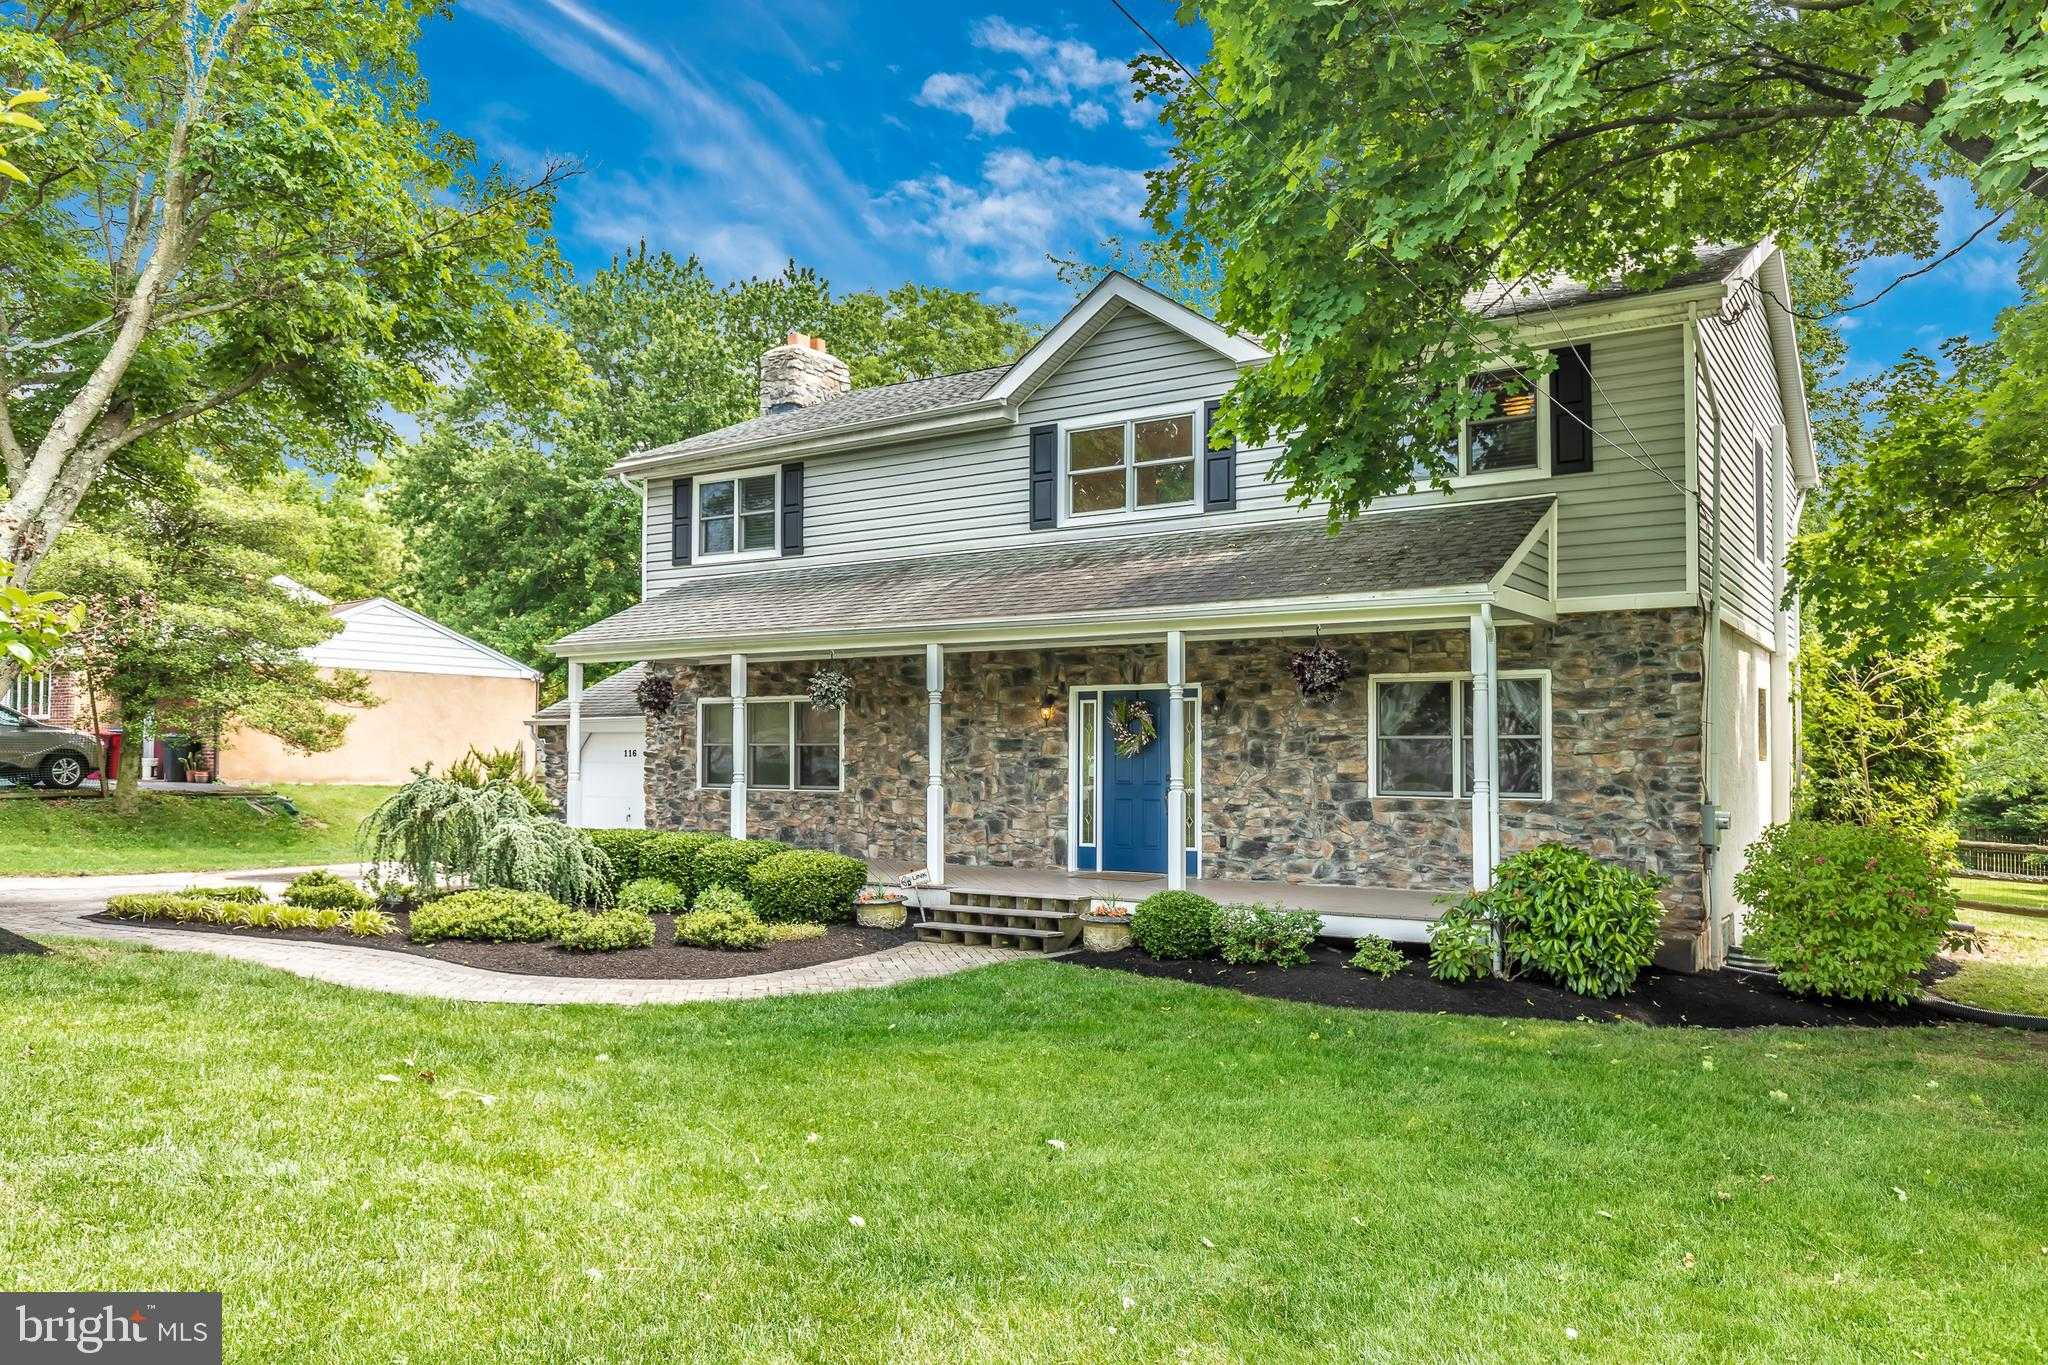 $394,500 - 3Br/3Ba -  for Sale in None Available, Norristown